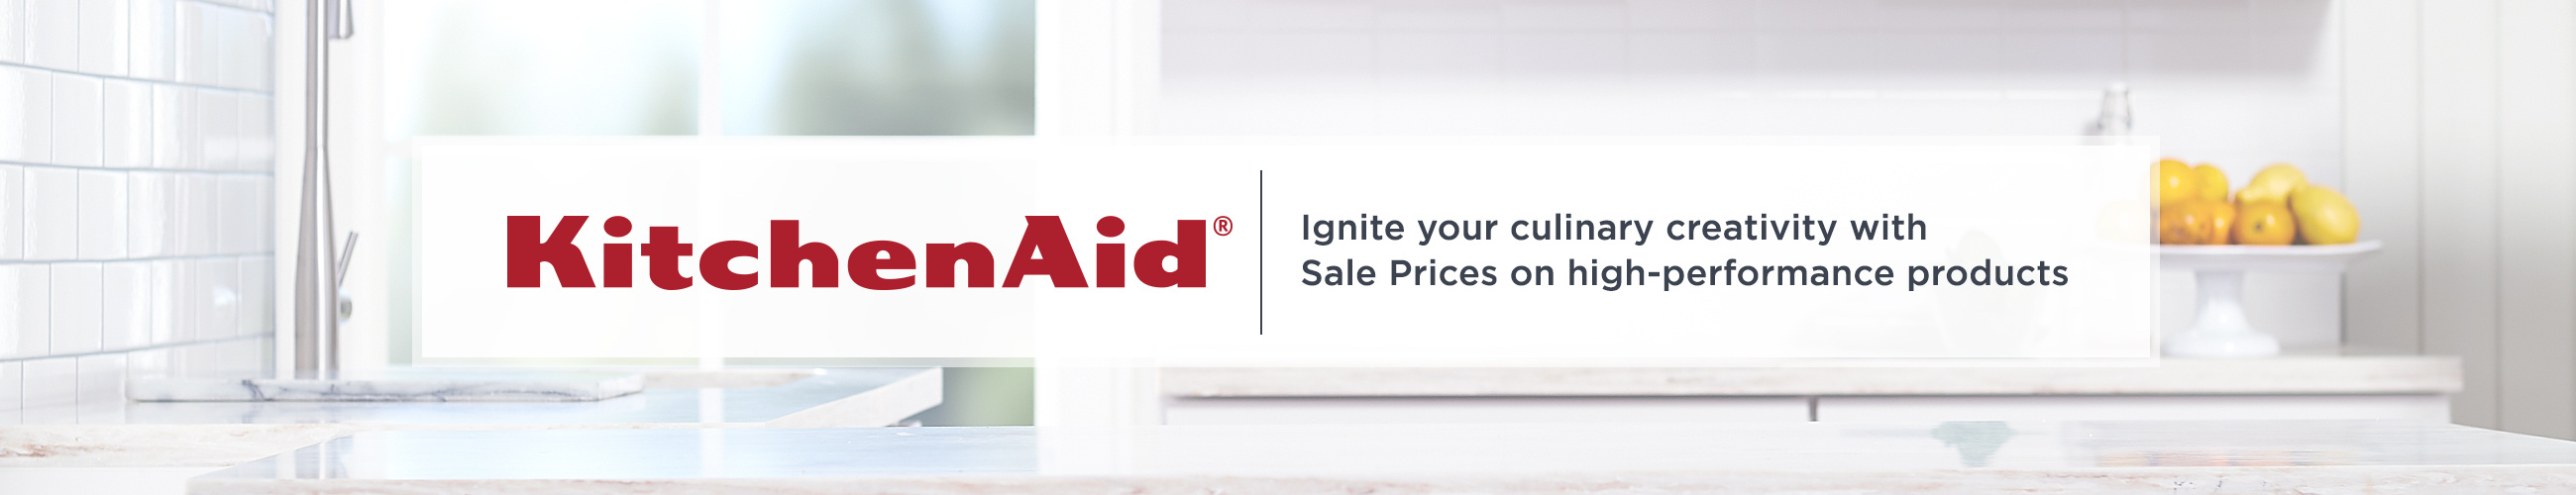 KitchenAid Ignite your culinary creativity with Sale Prices on high-performance products